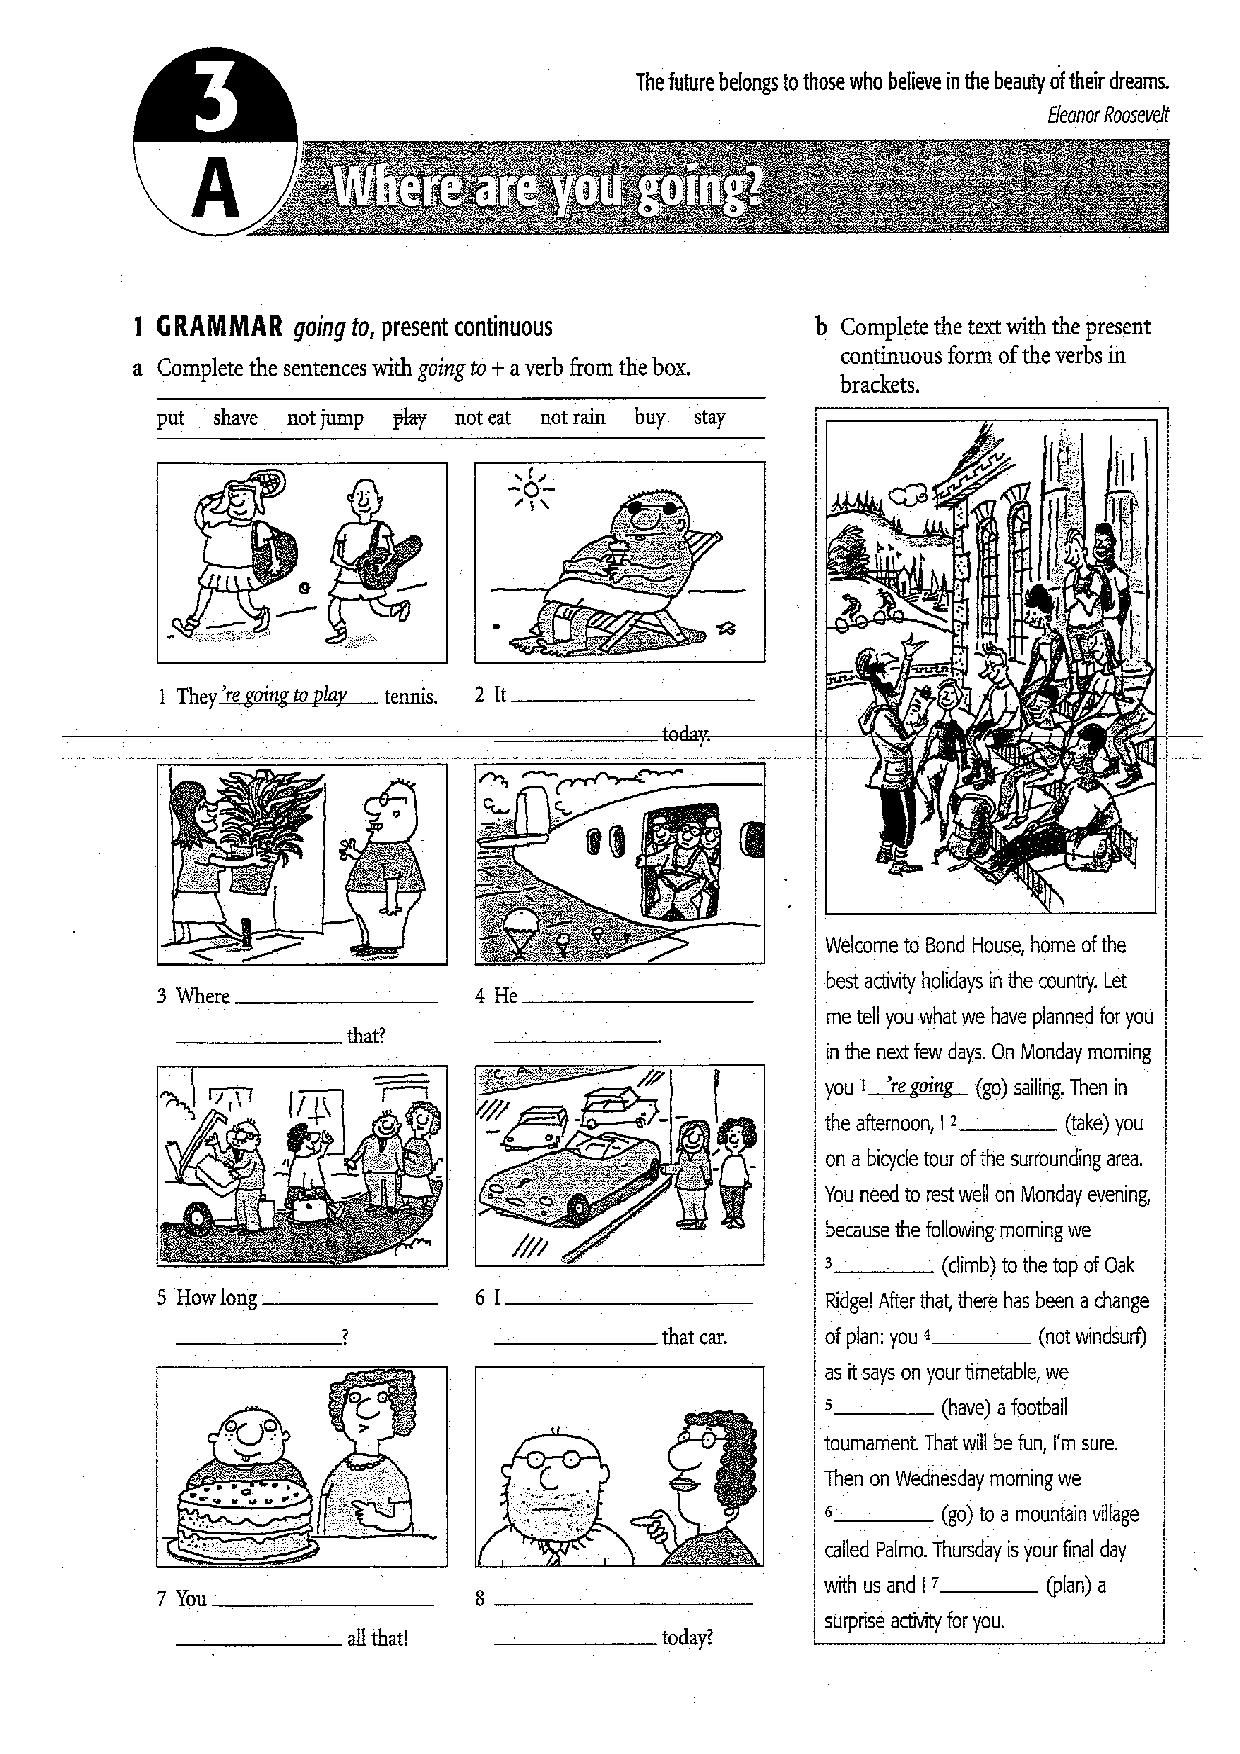 17 Best Images Of Spanish Interrogatives Worksheet